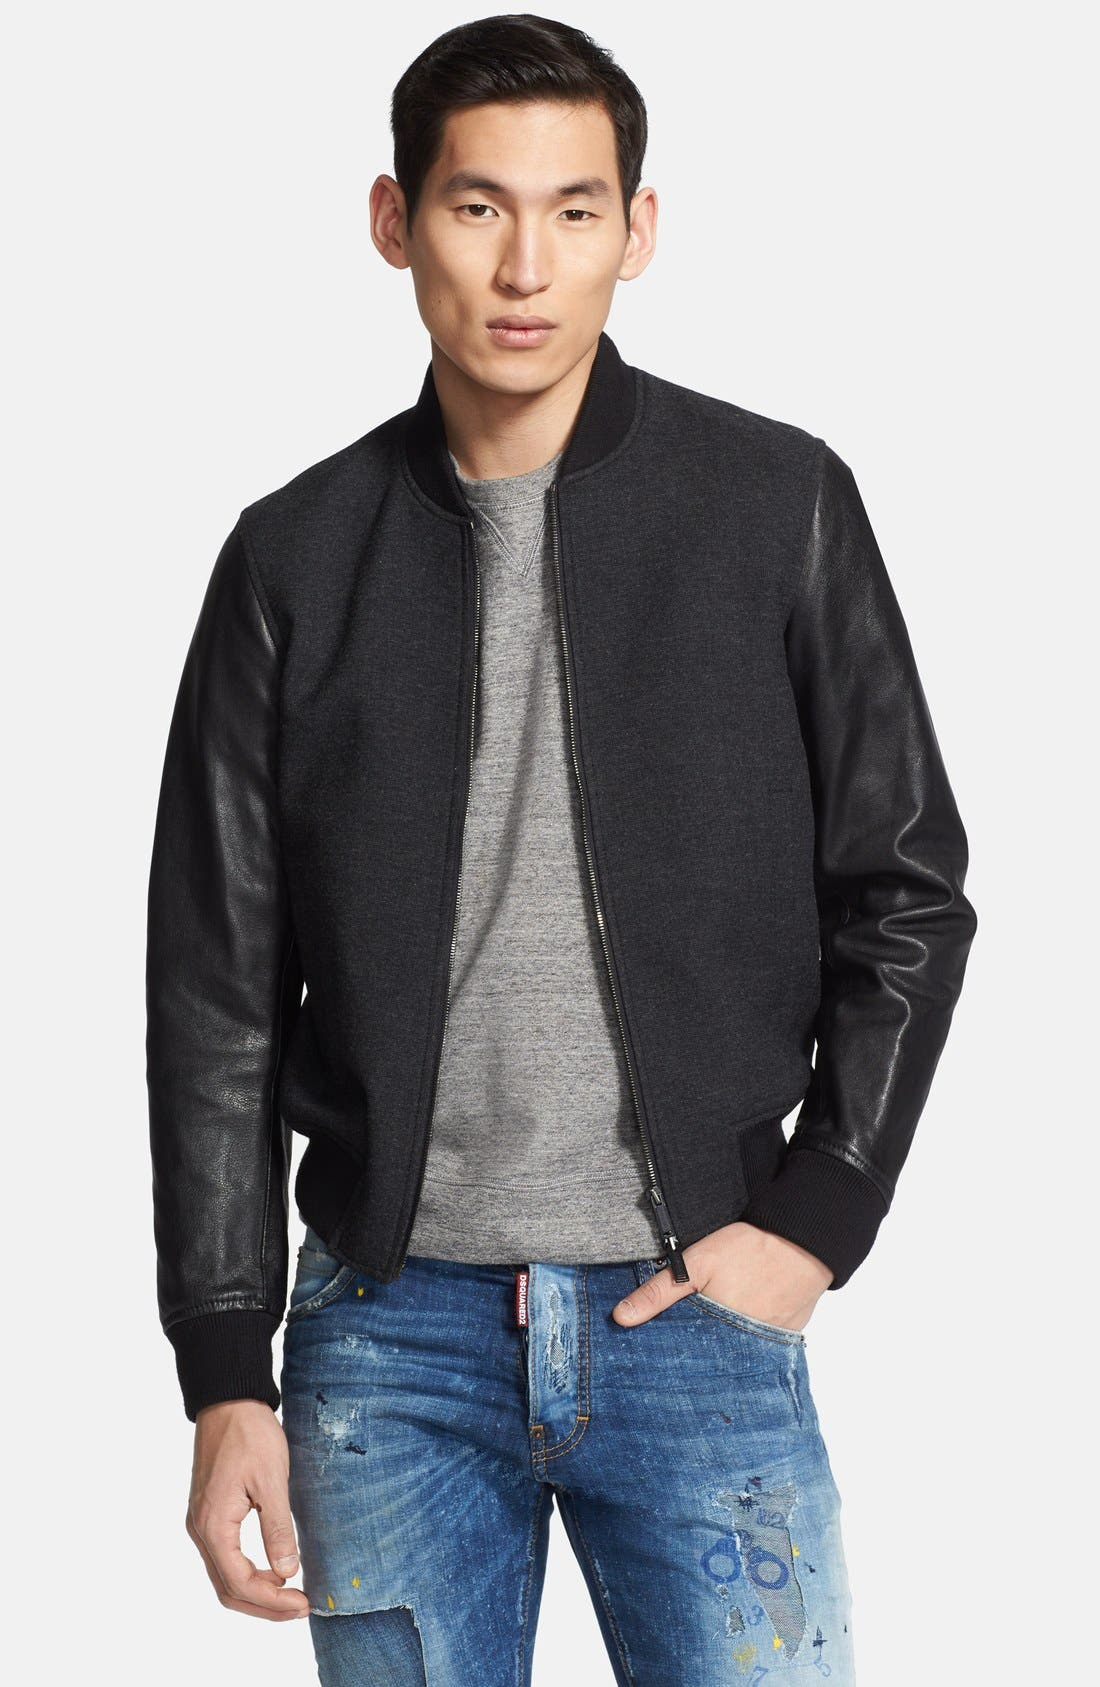 Alternate Image 1 Selected - Dsquared2 Virgin Wool Bomber Jacket with Leather Sleeves